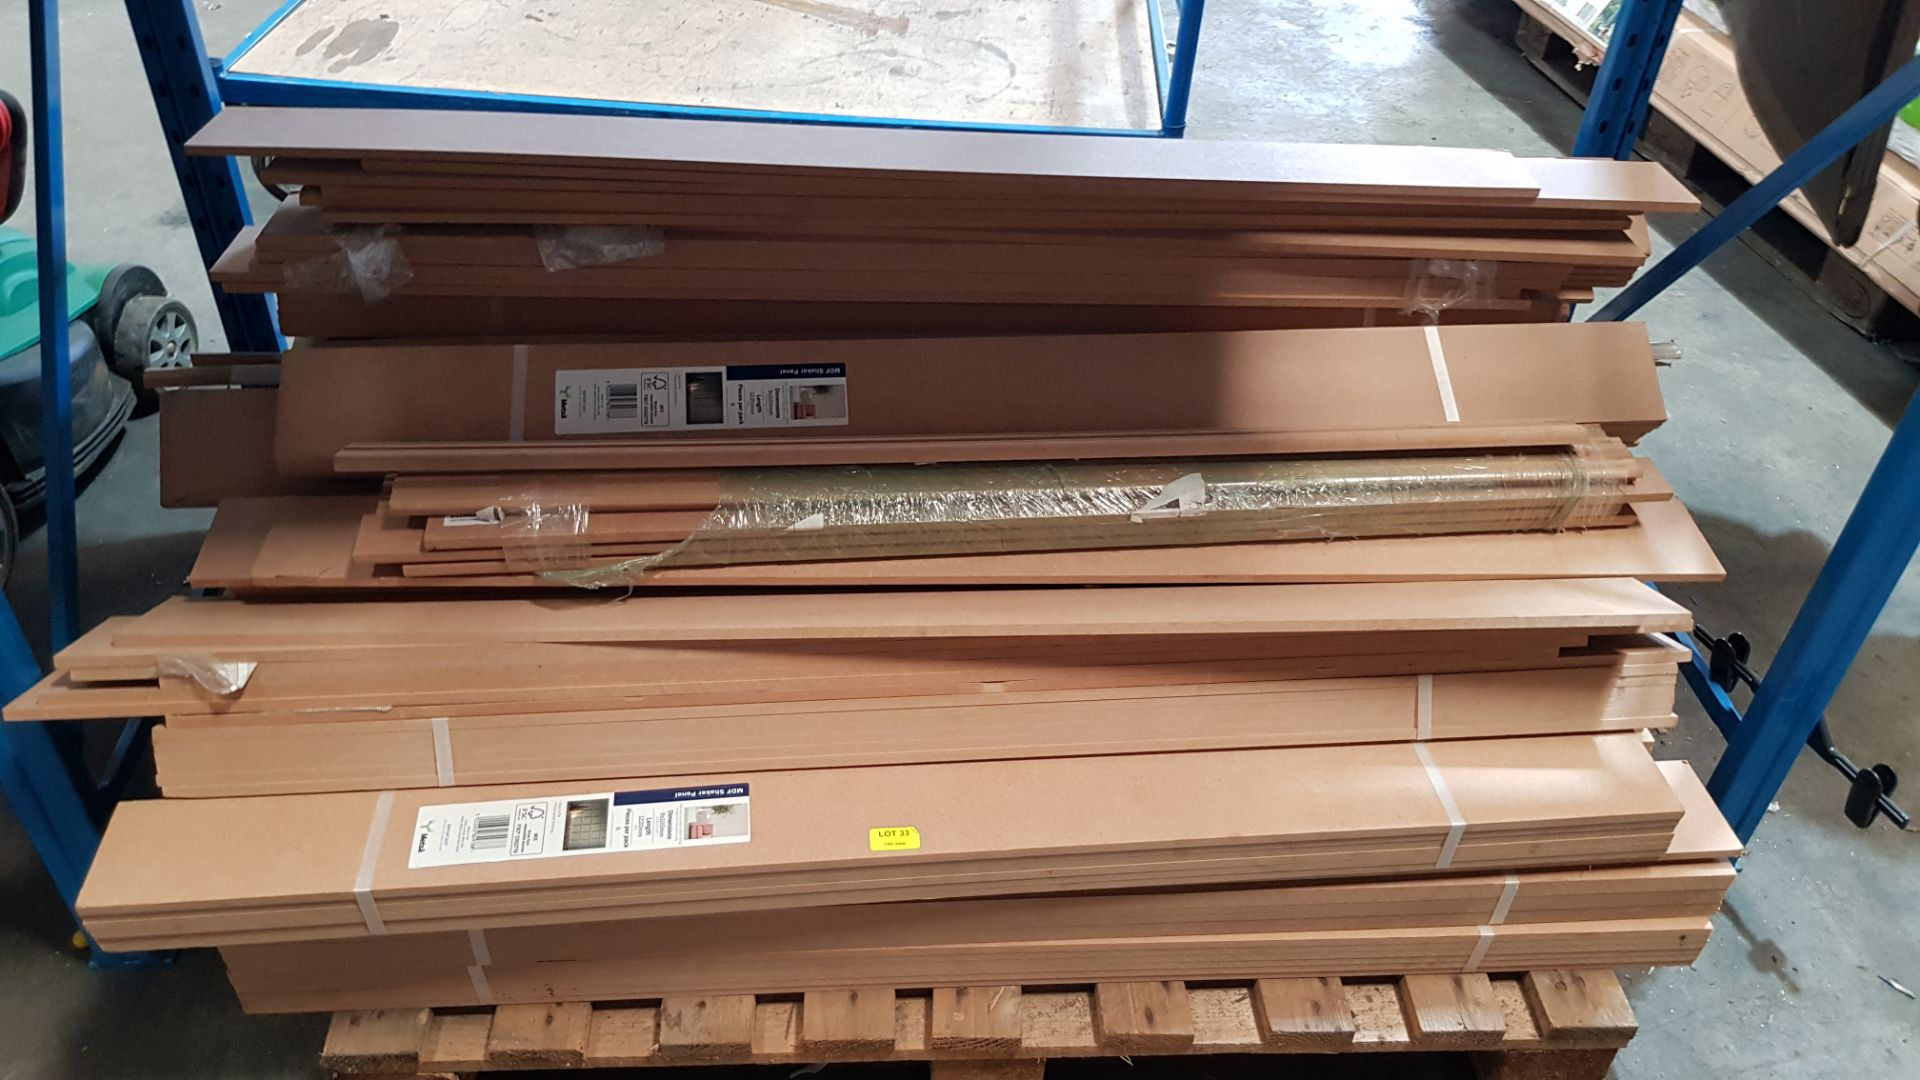 (R10G) Contents Of Pallet. A Qty Of Metsa MDF Shaker Panel. (9 x 100 x 12200mm) - Image 2 of 2